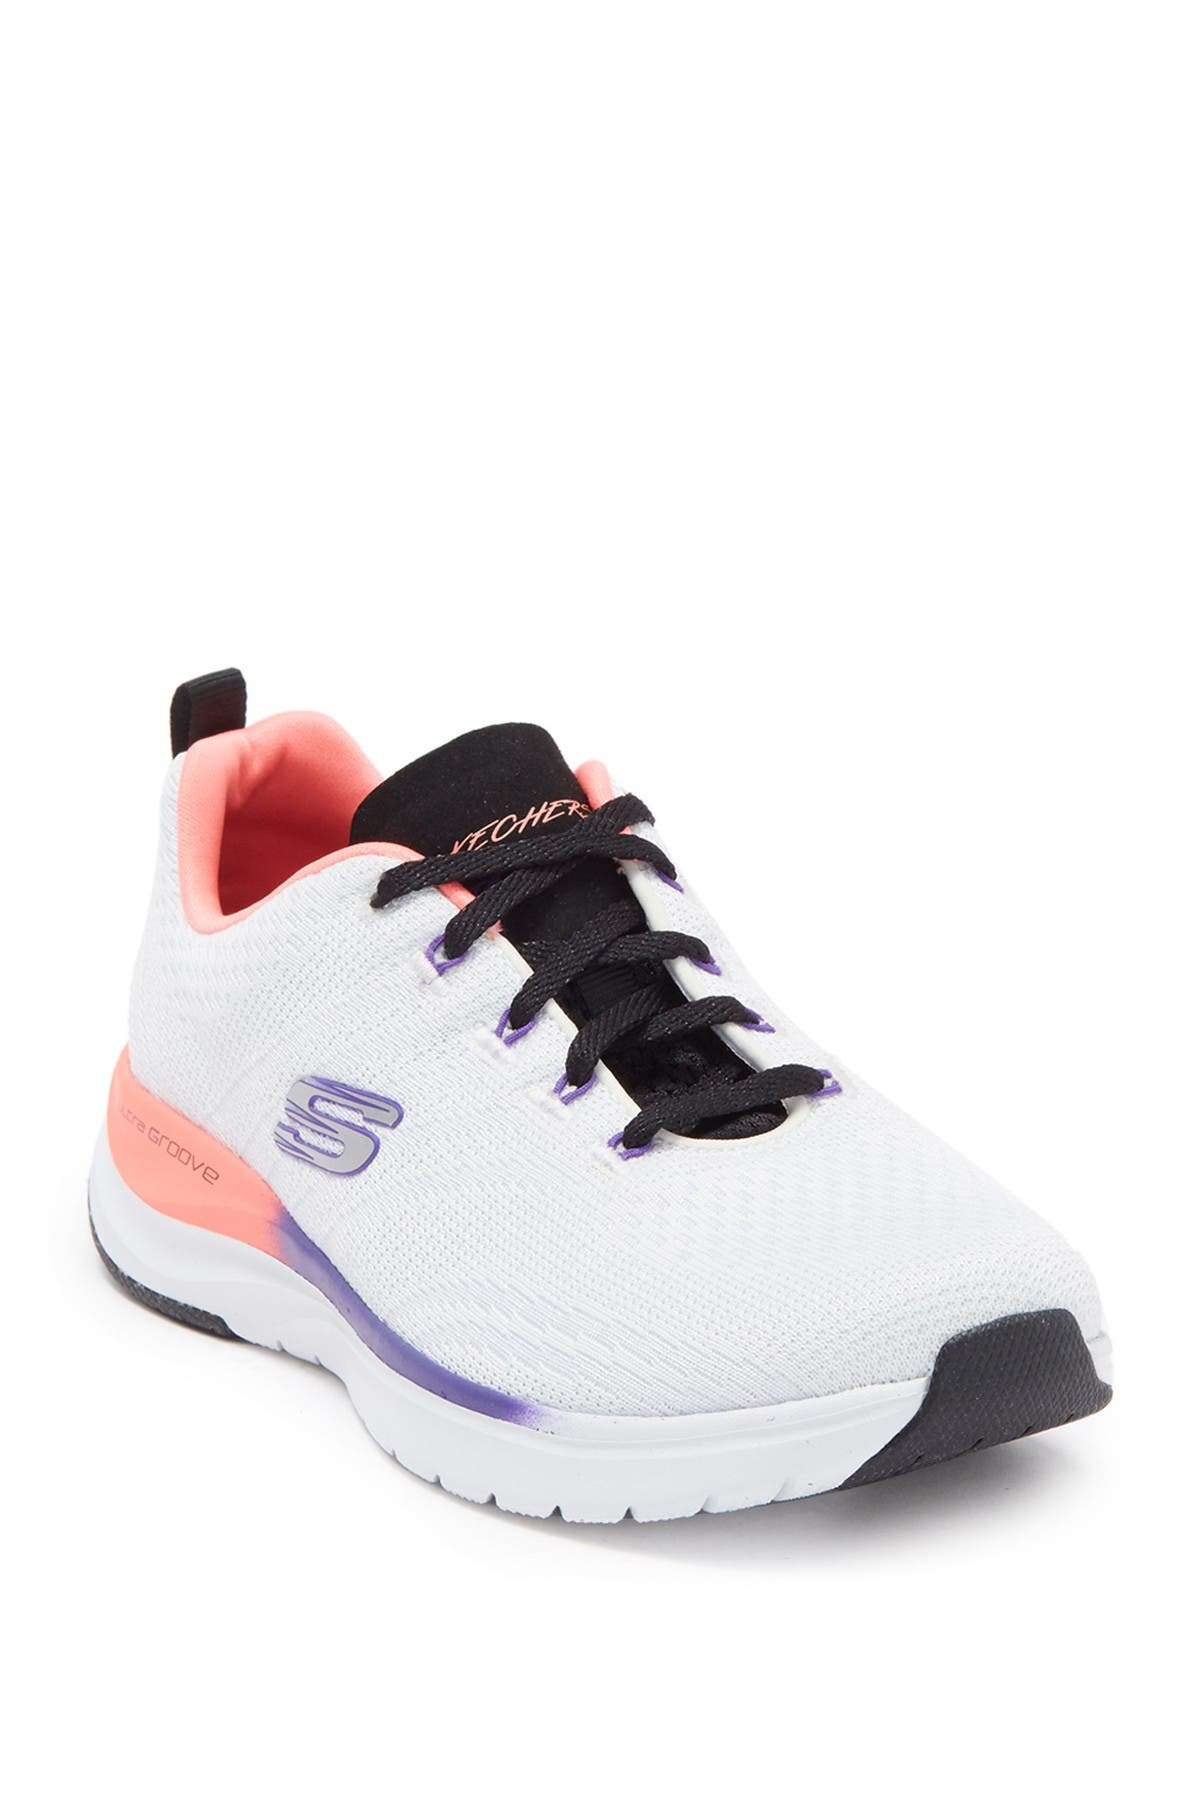 Image of Skechers Ultra Groove Pure Vision Sneaker